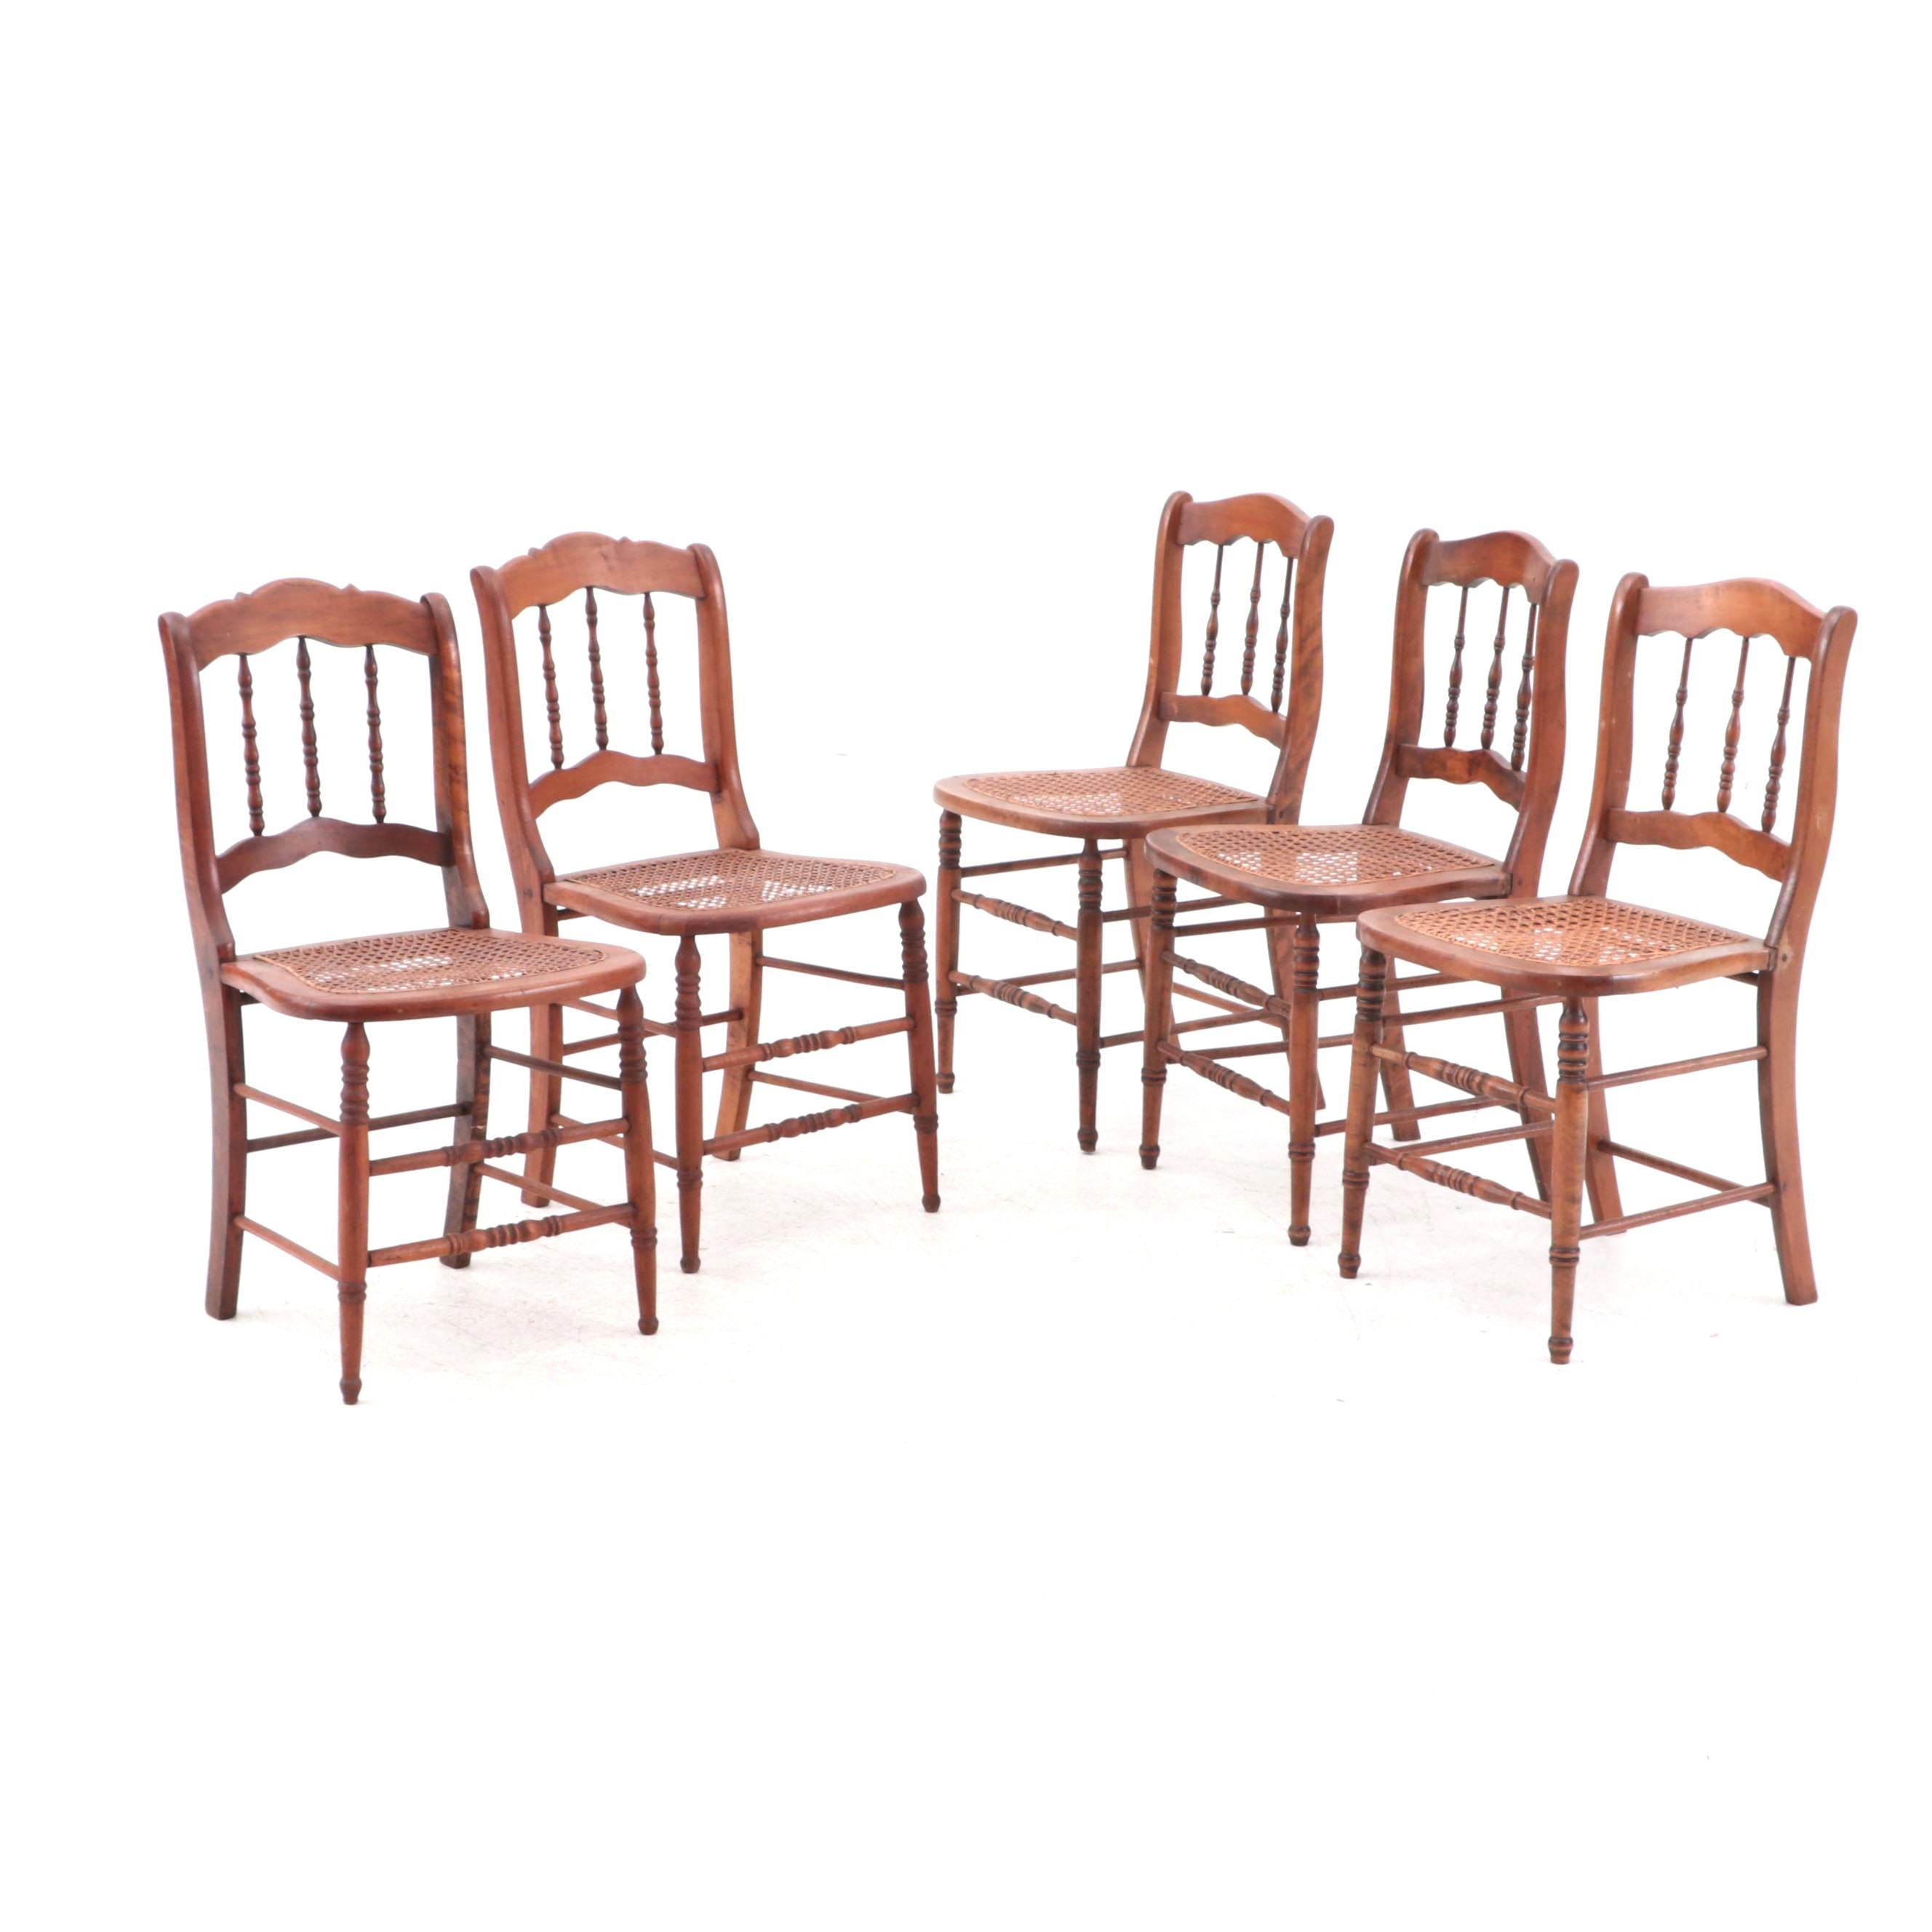 Early Victorian Side Chairs with Caned Seats in Walnut